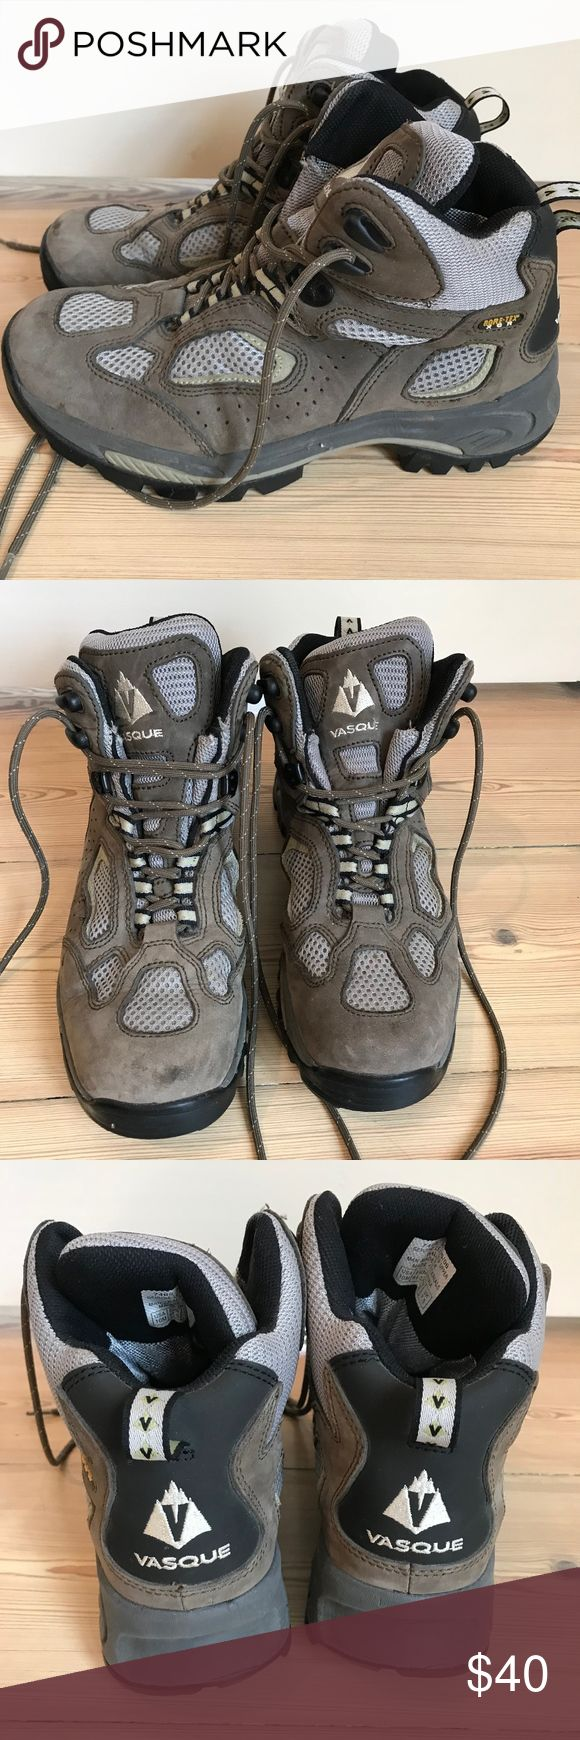 Vasque Hiking boots Vasque hiking boots. Only used twice.  Great condition. Vasque Shoes Ankle Boots & Booties